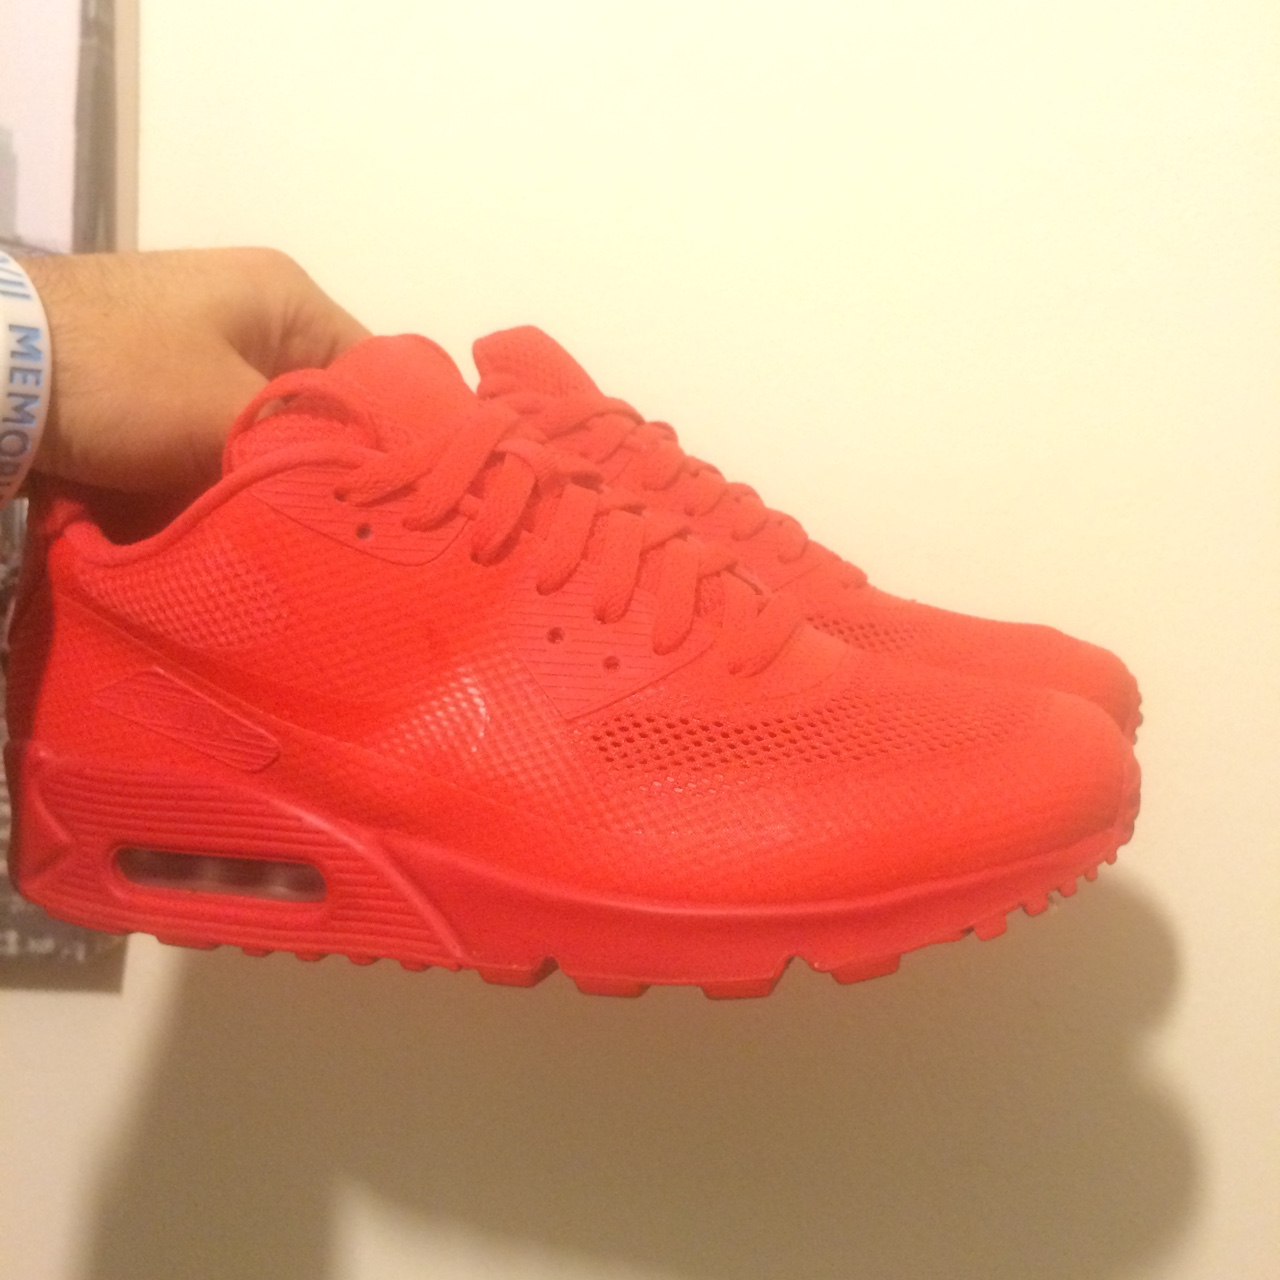 Nike air Max 90 ID Red october, us 8 41 Buone Depop